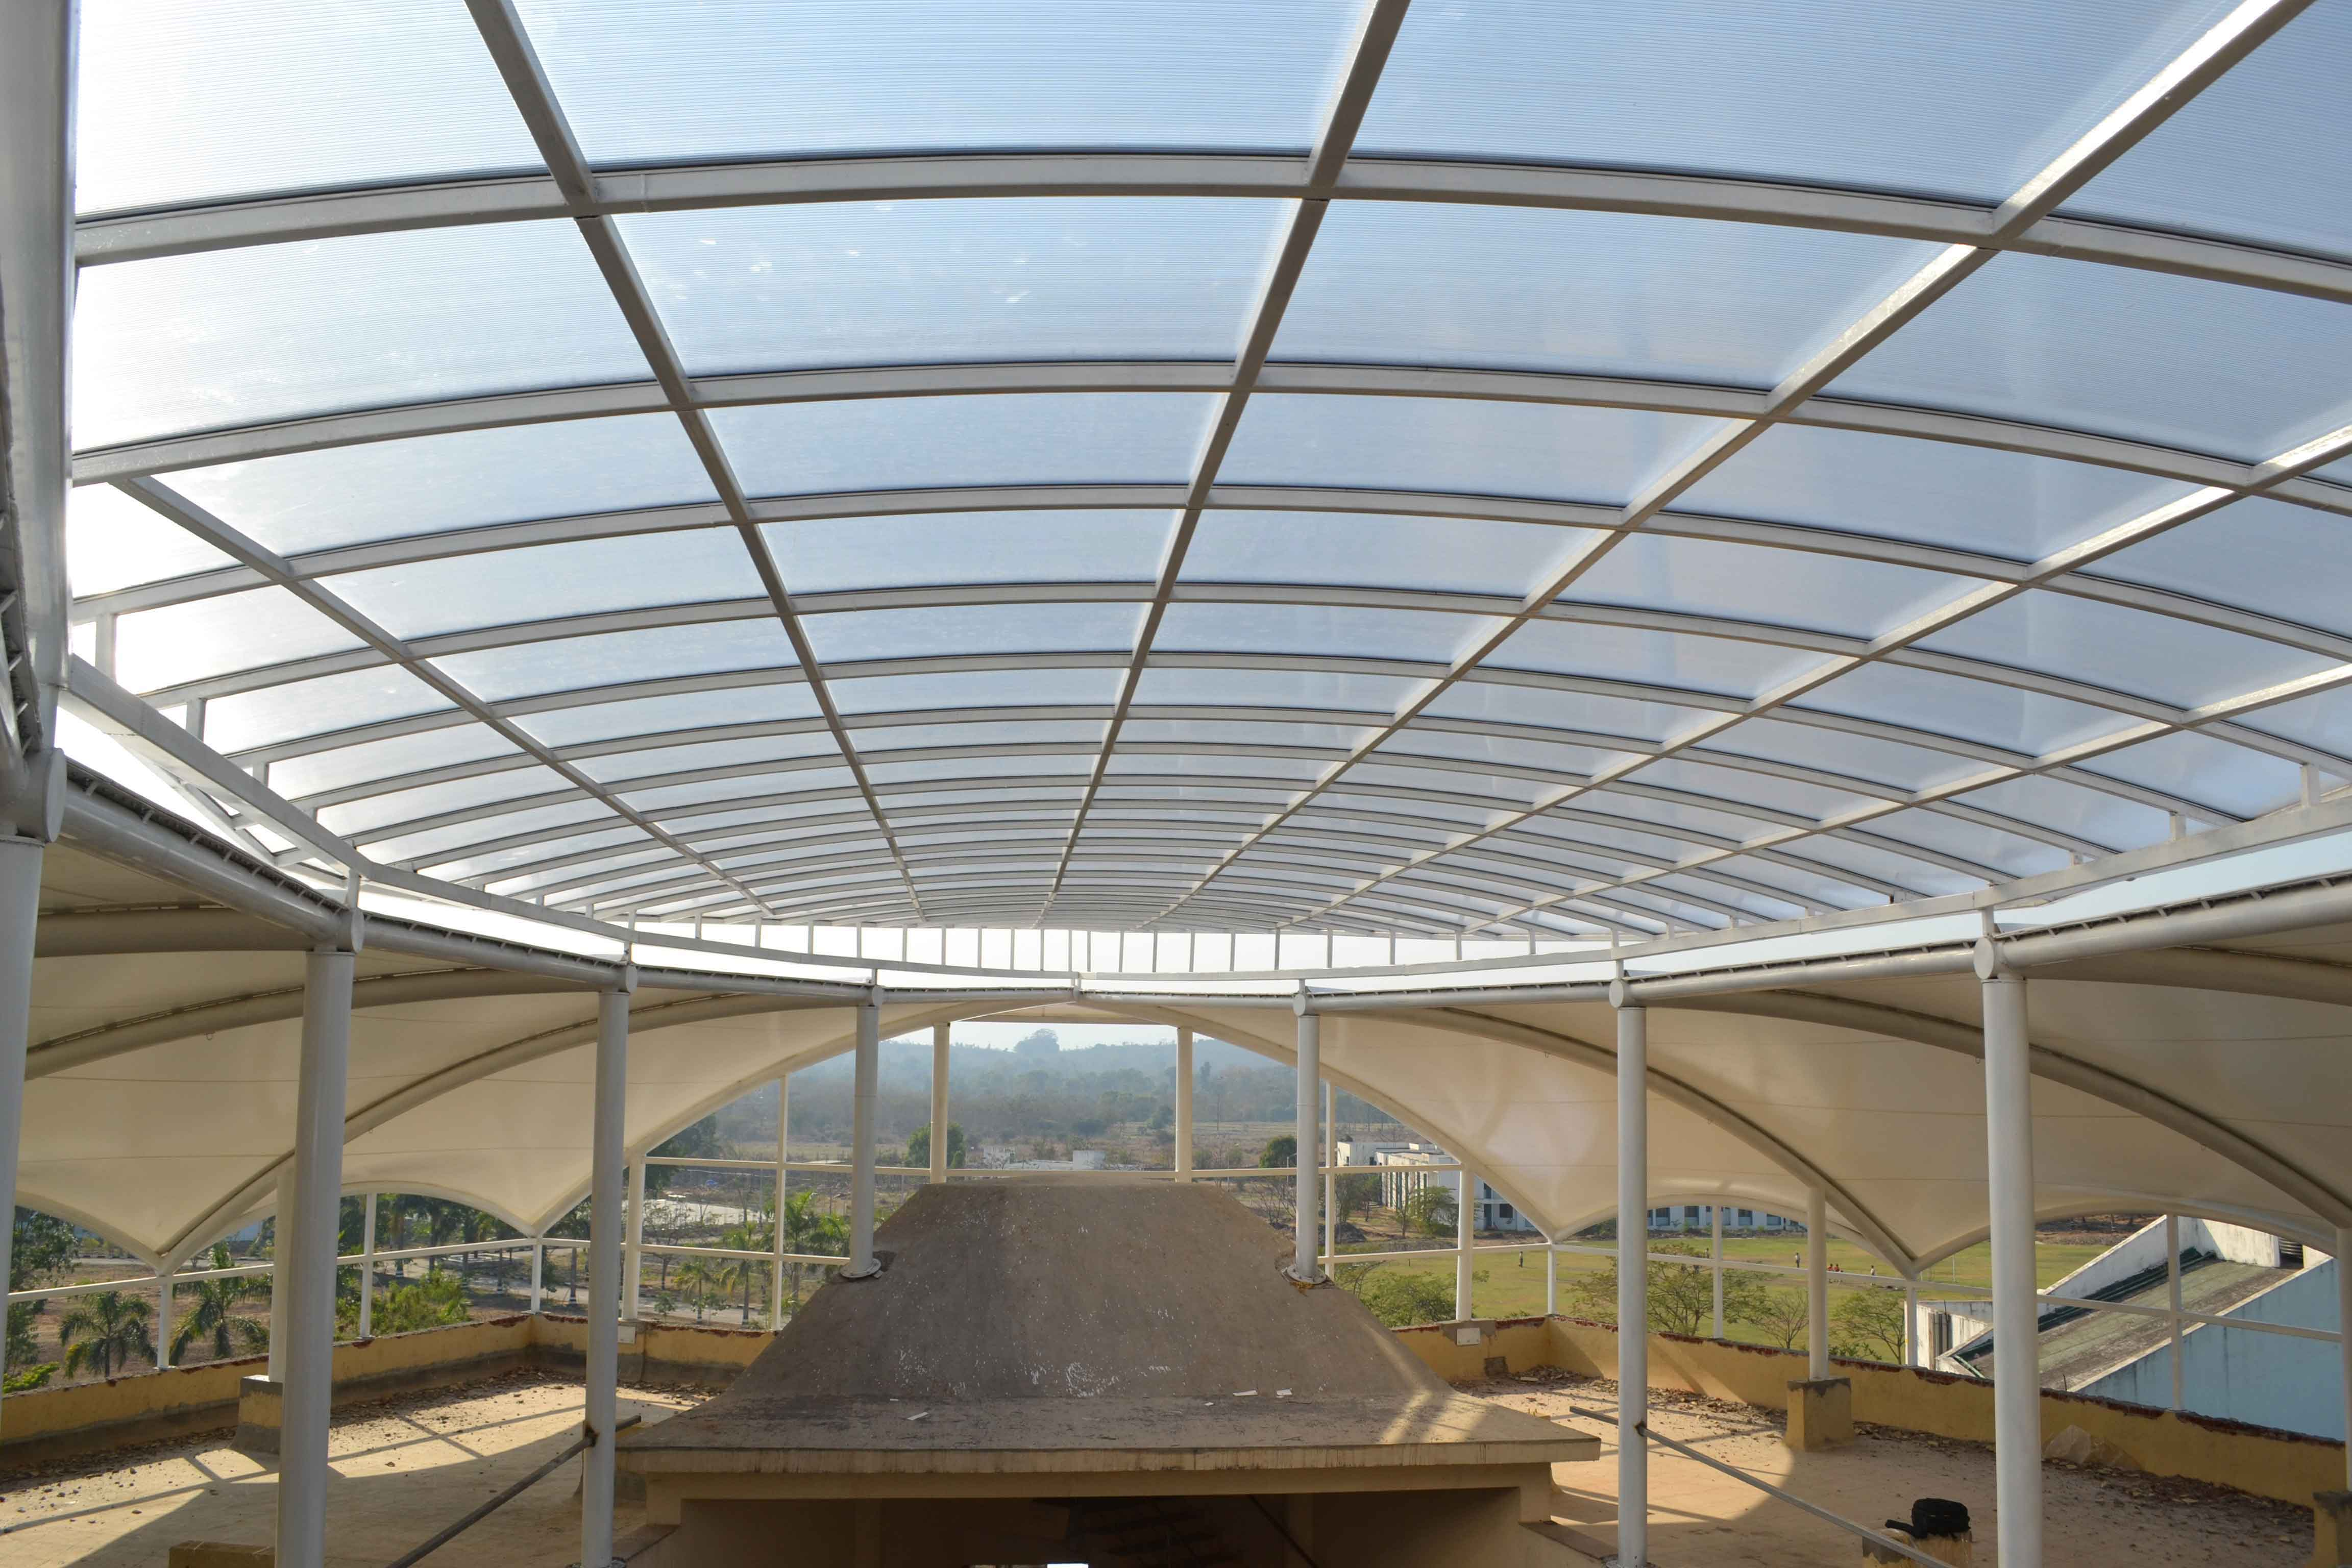 ravera international school roof shade fabric structure in palghar, thane, maharashtra, india